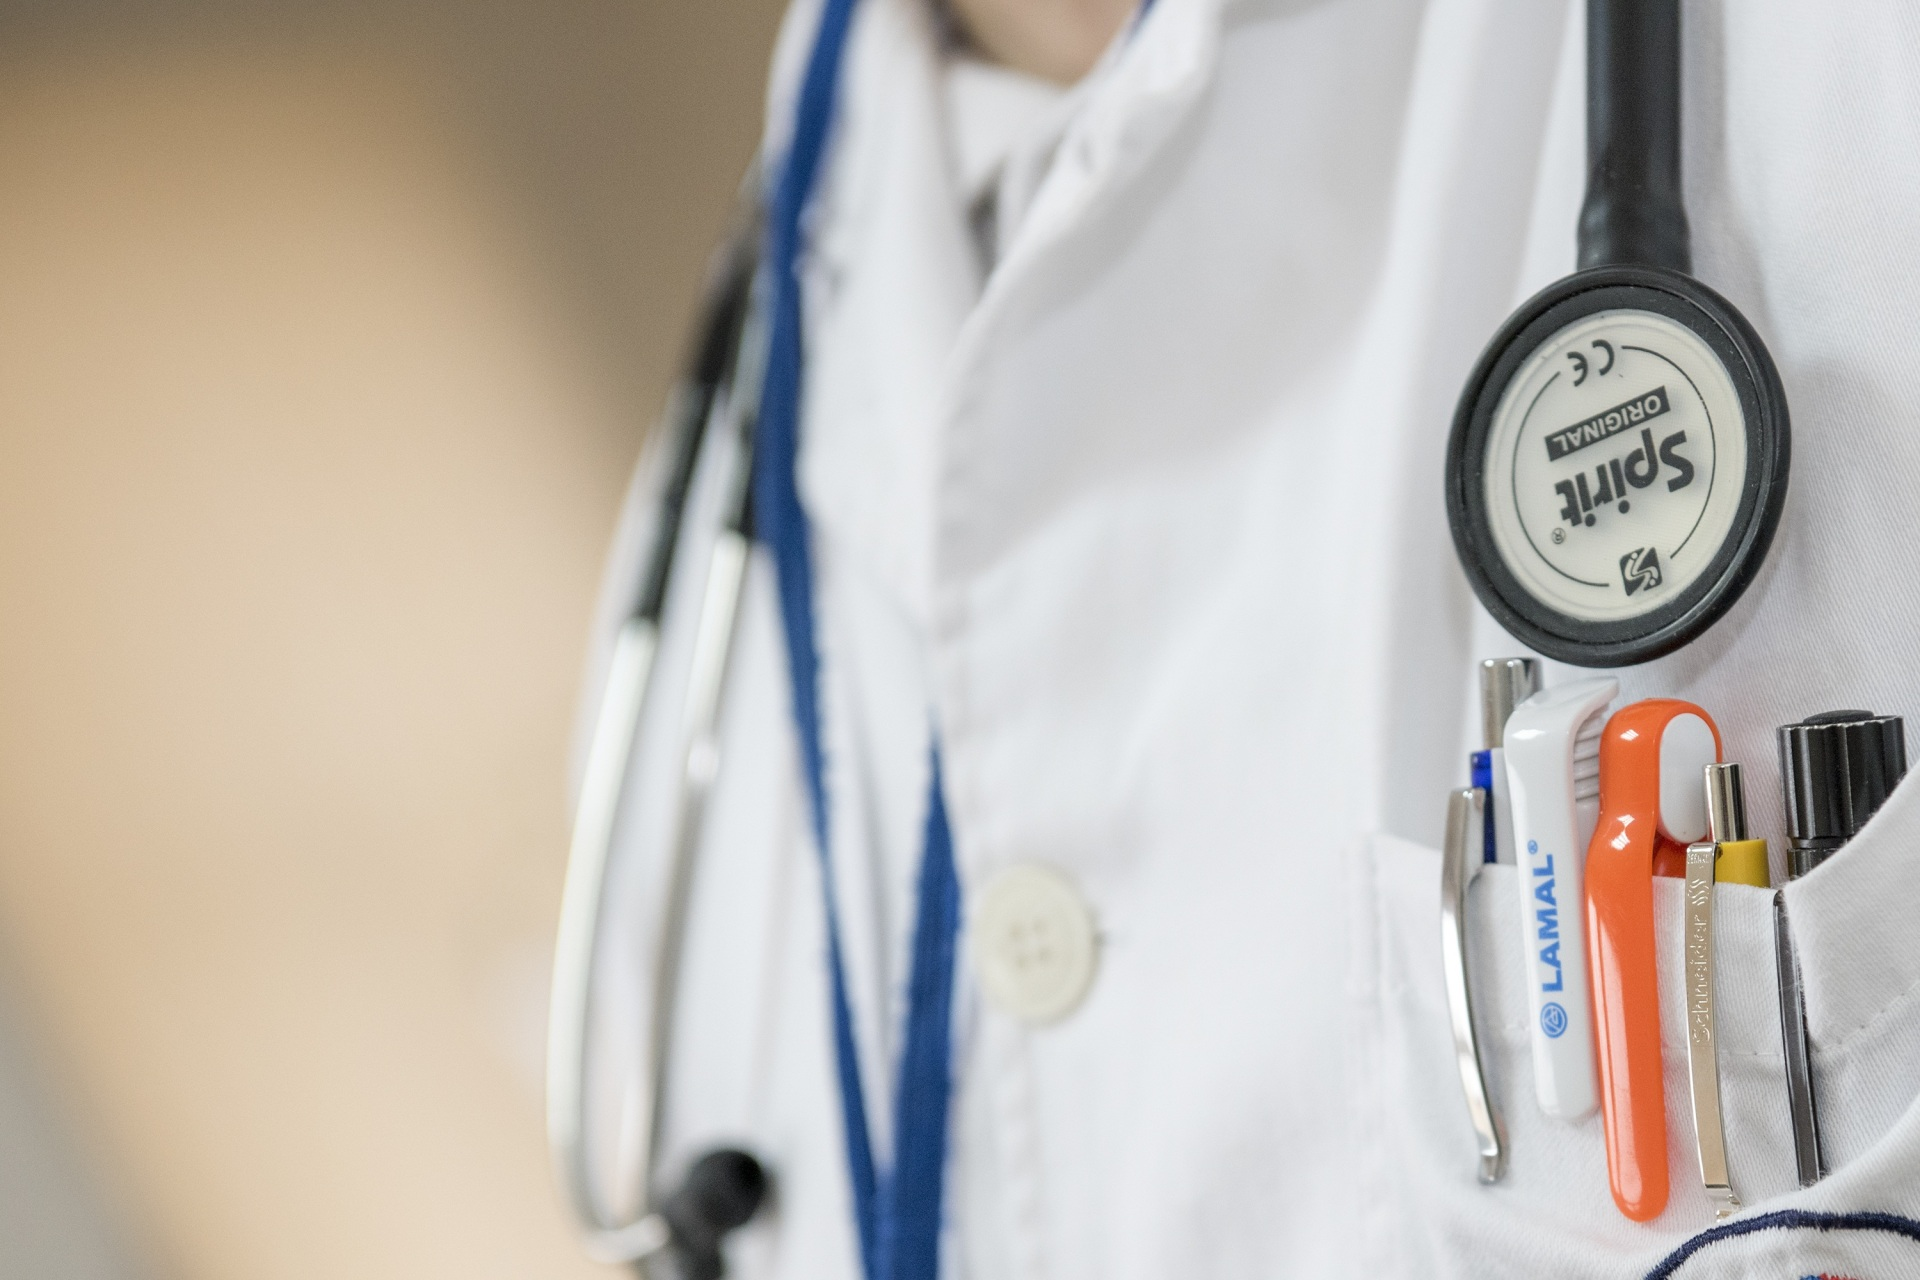 Closeup of doctor's white coat with pens and stethoscope.